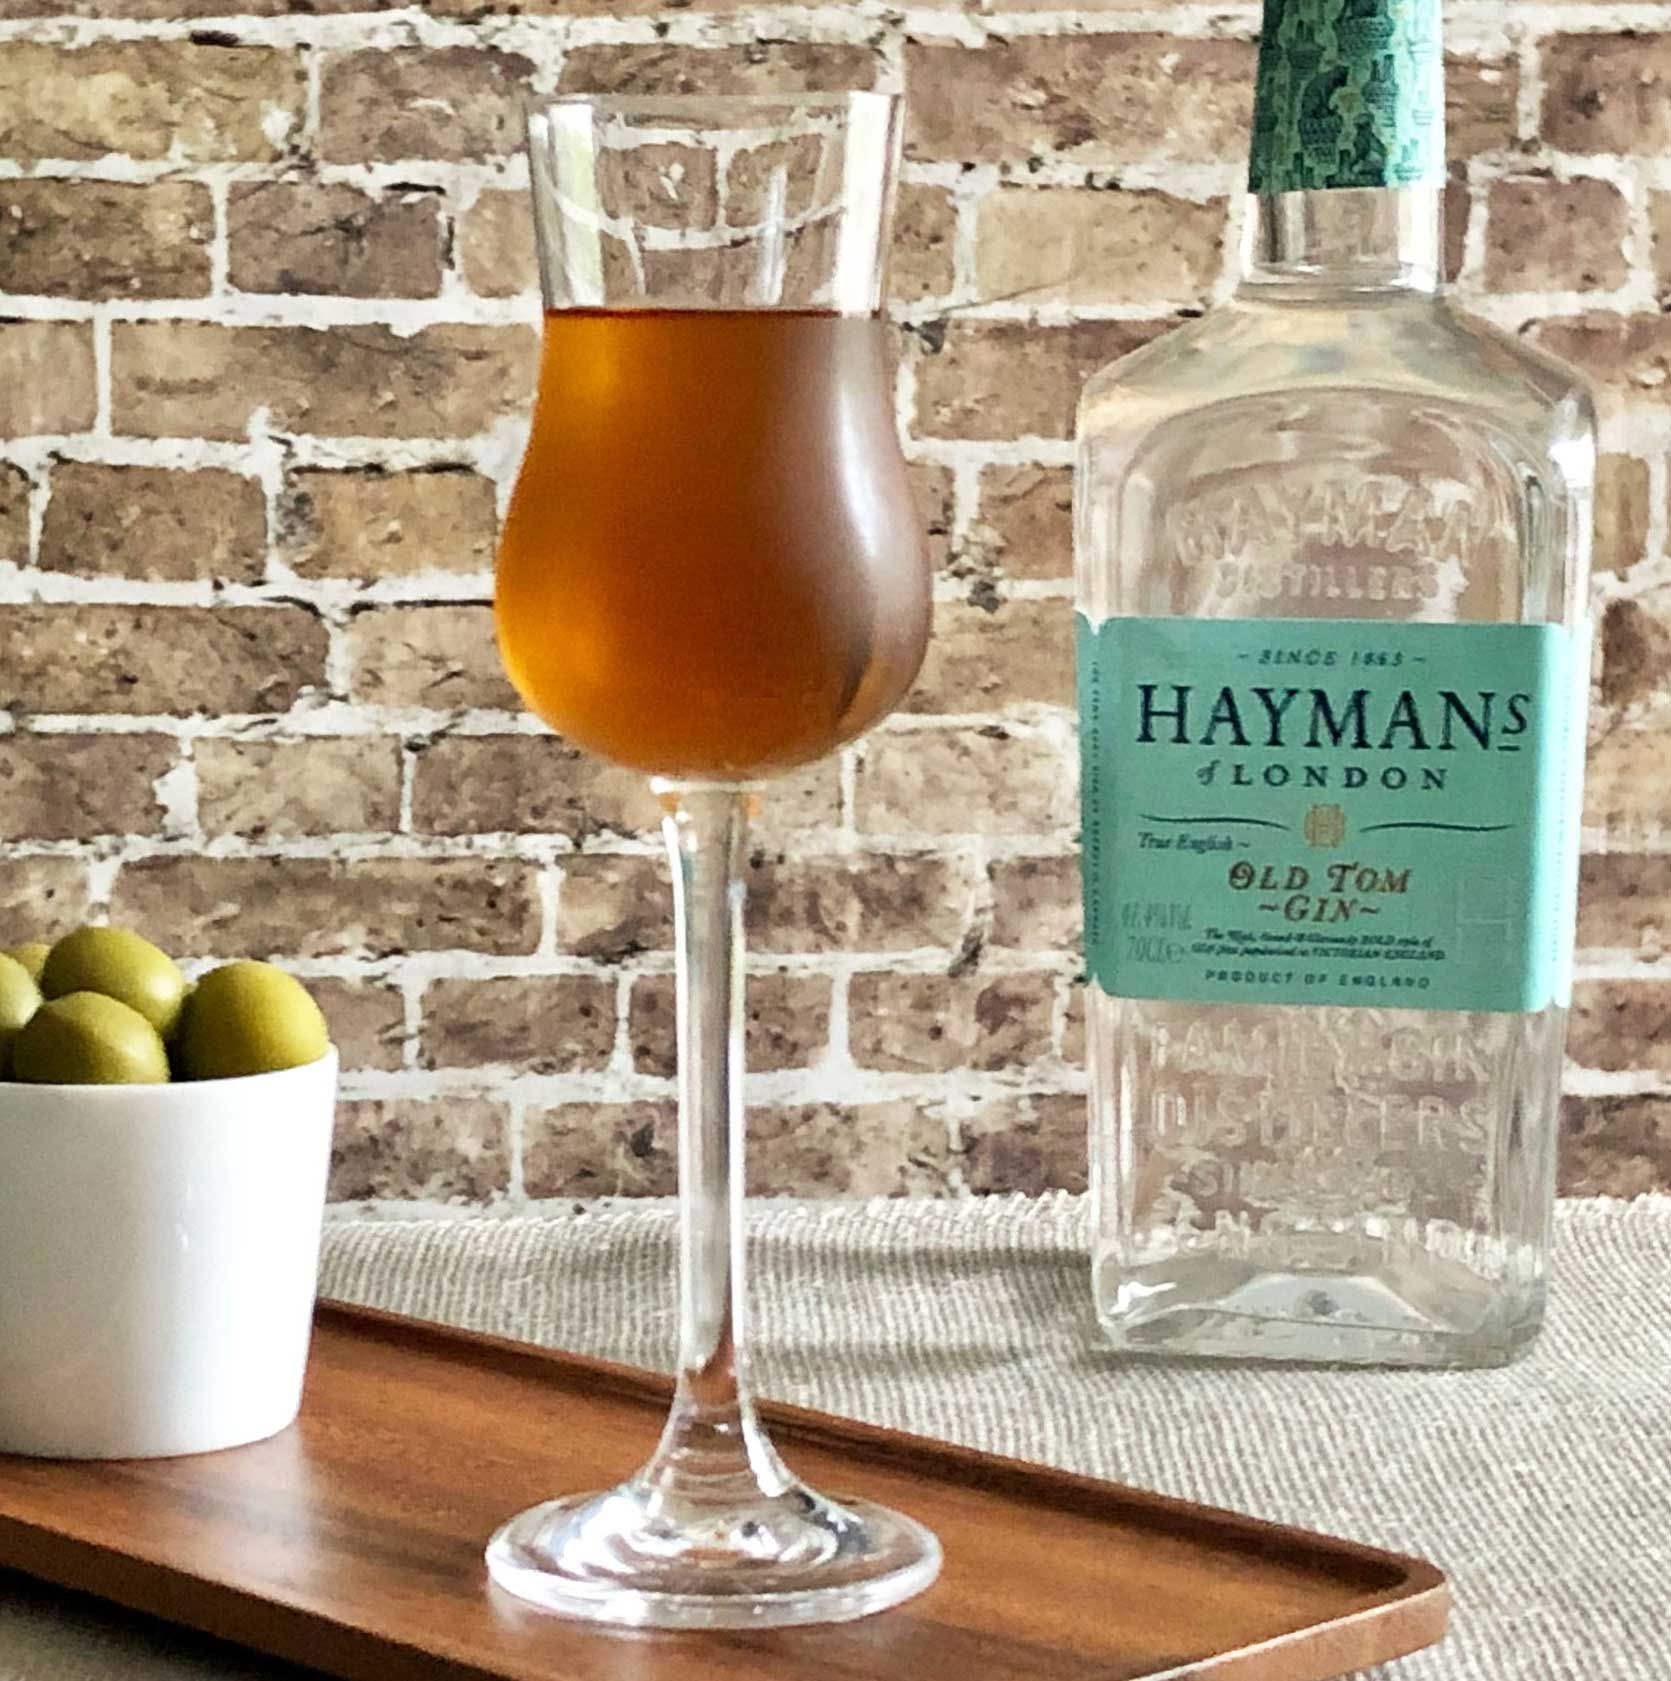 An example of the The Spring Cocktail, the mixed drink (cocktail), adapted from the Savoy Cocktail Book by Erik Ellestad, featuring Hayman's Old Tom Gin, Bonal Gentiane-Quina, Bénédictine, and orange bitters; photo by Lee Edwards